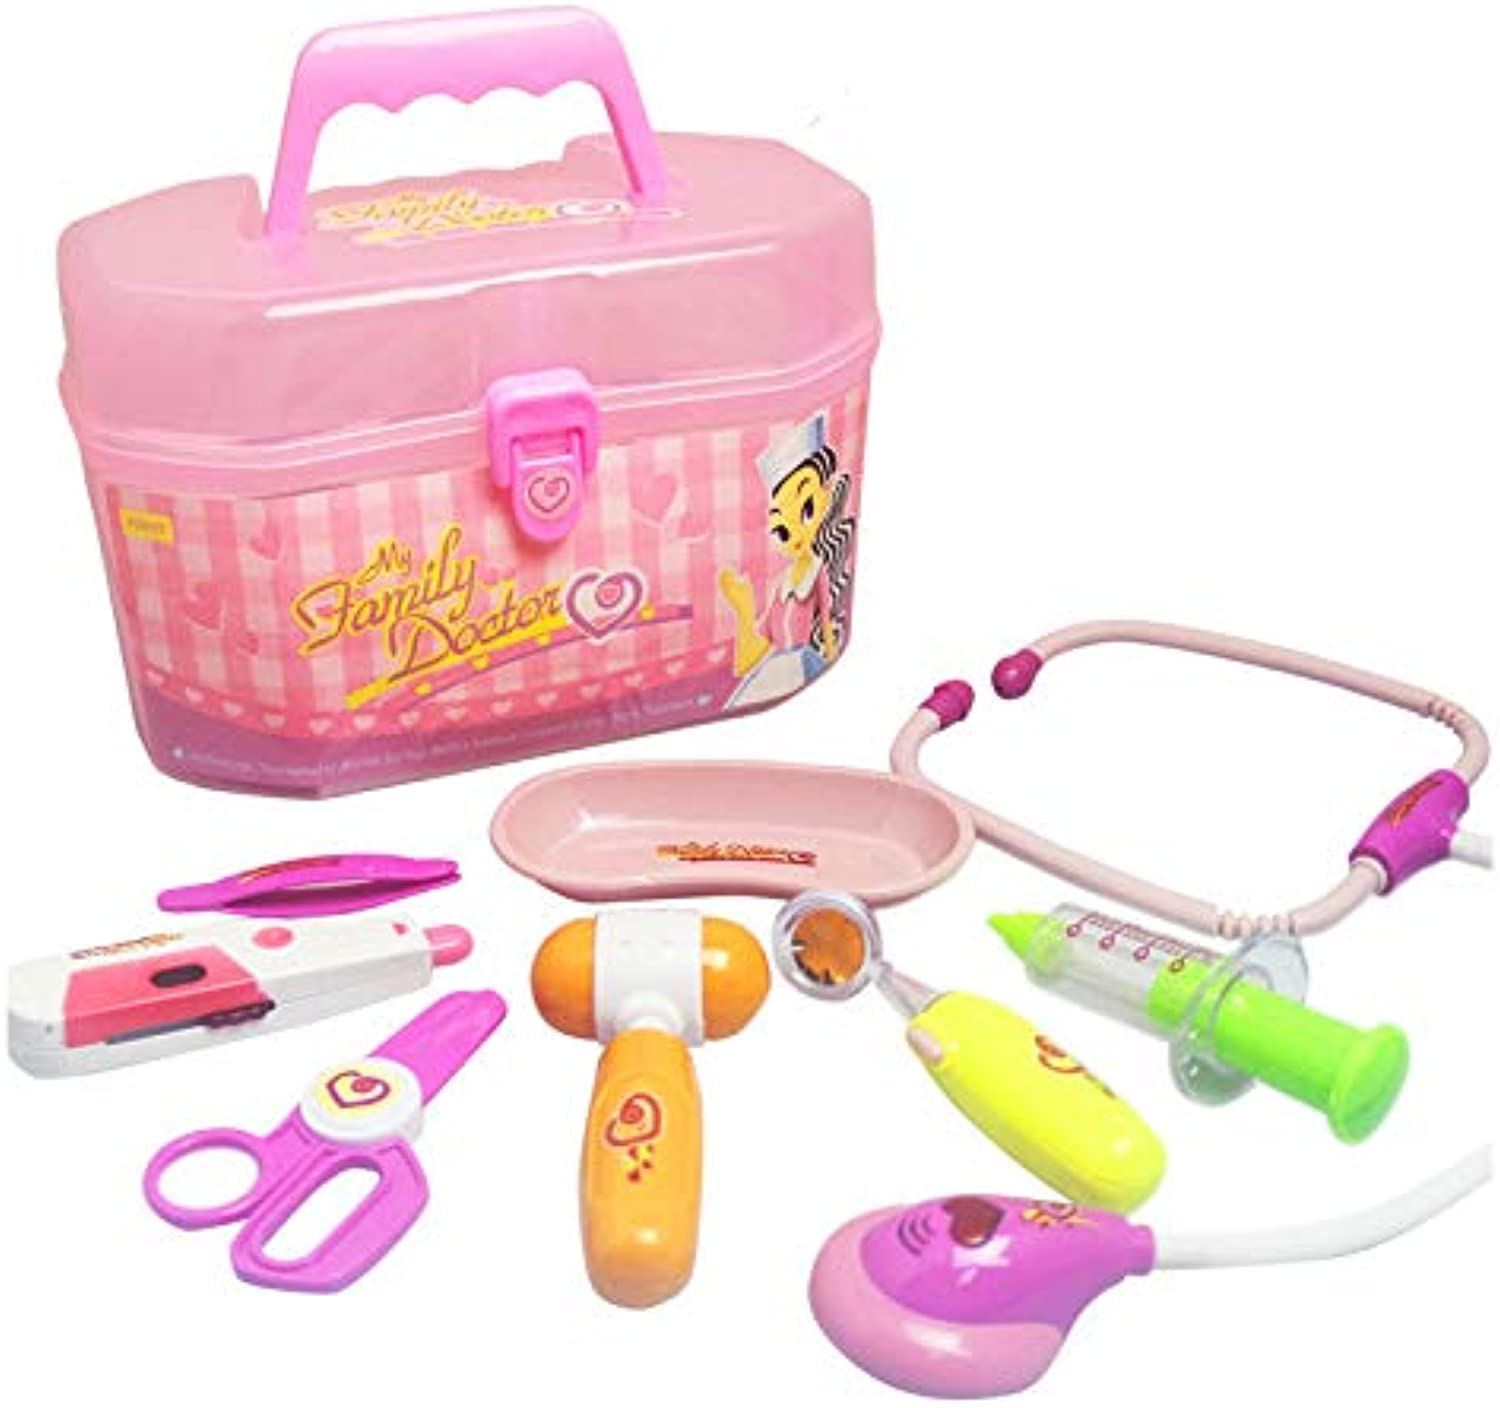 Laliva Learning & Education - Kids Pretending Doctor's Medical Playing Set Case Education Kit Boys Girls Toys - (color  Pink)